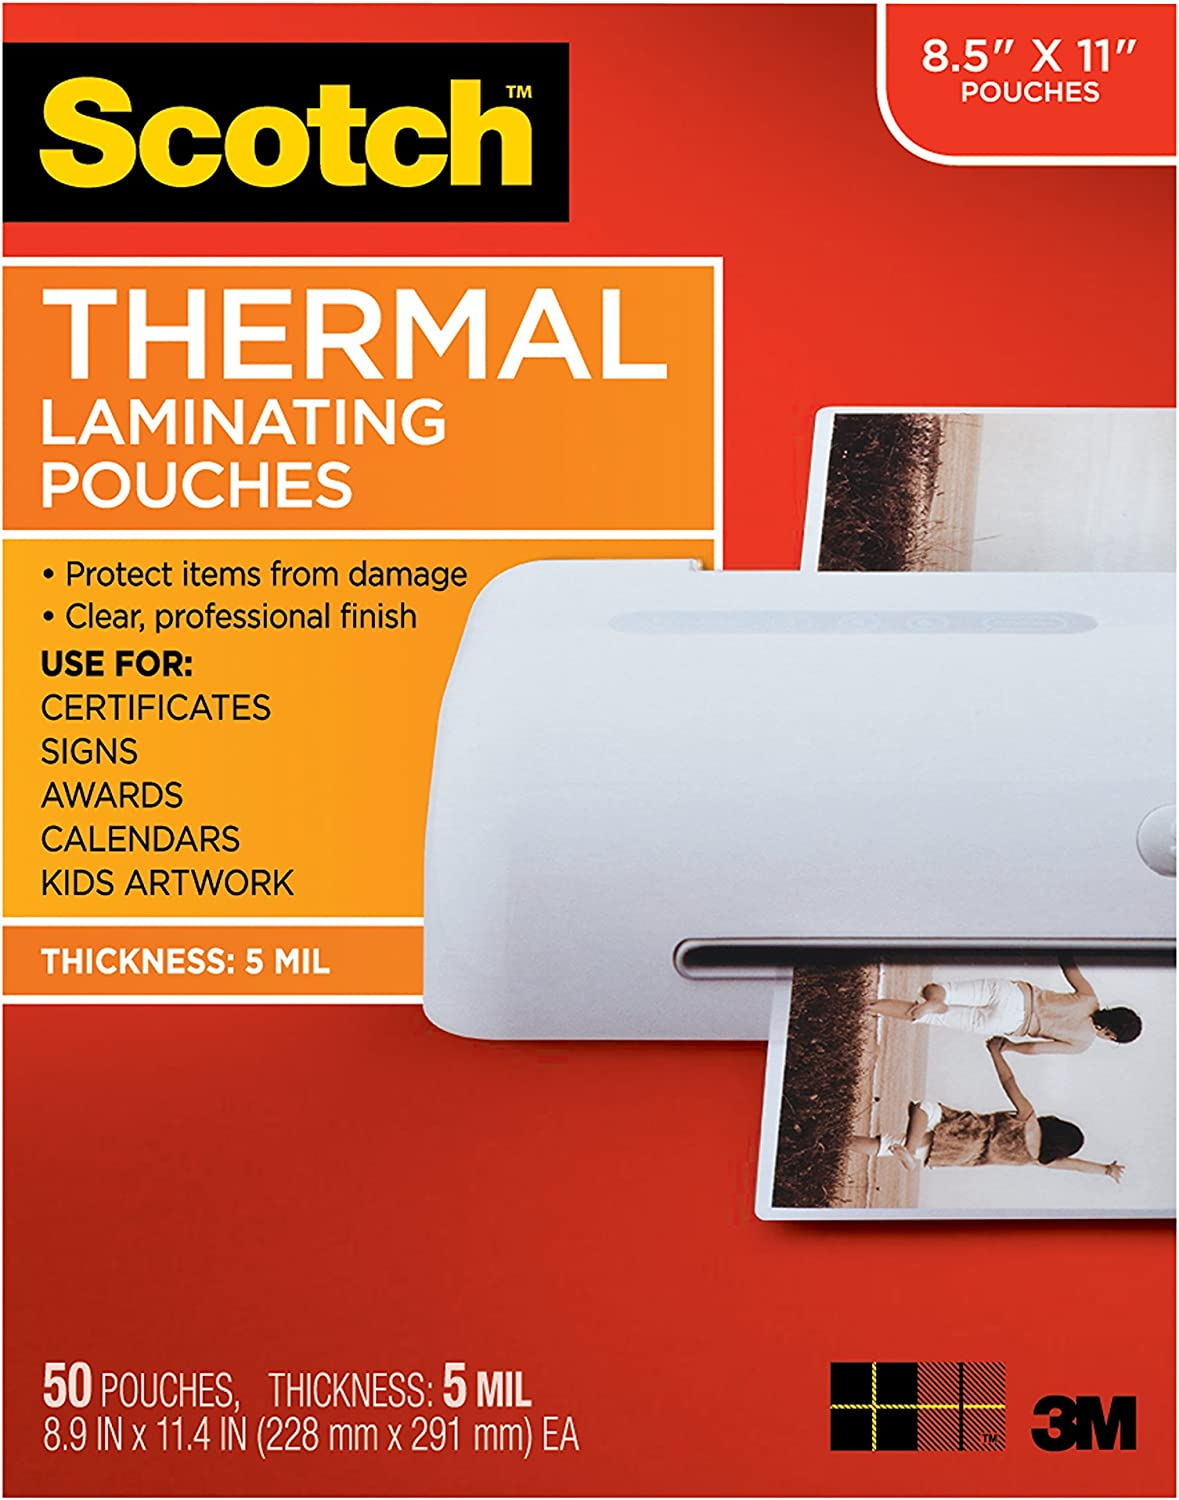 Scotch Thermal Laminating Pouches, 8.9 x 11.4-Inches, 5 mil thick, 50-Pack (TP5854-50)